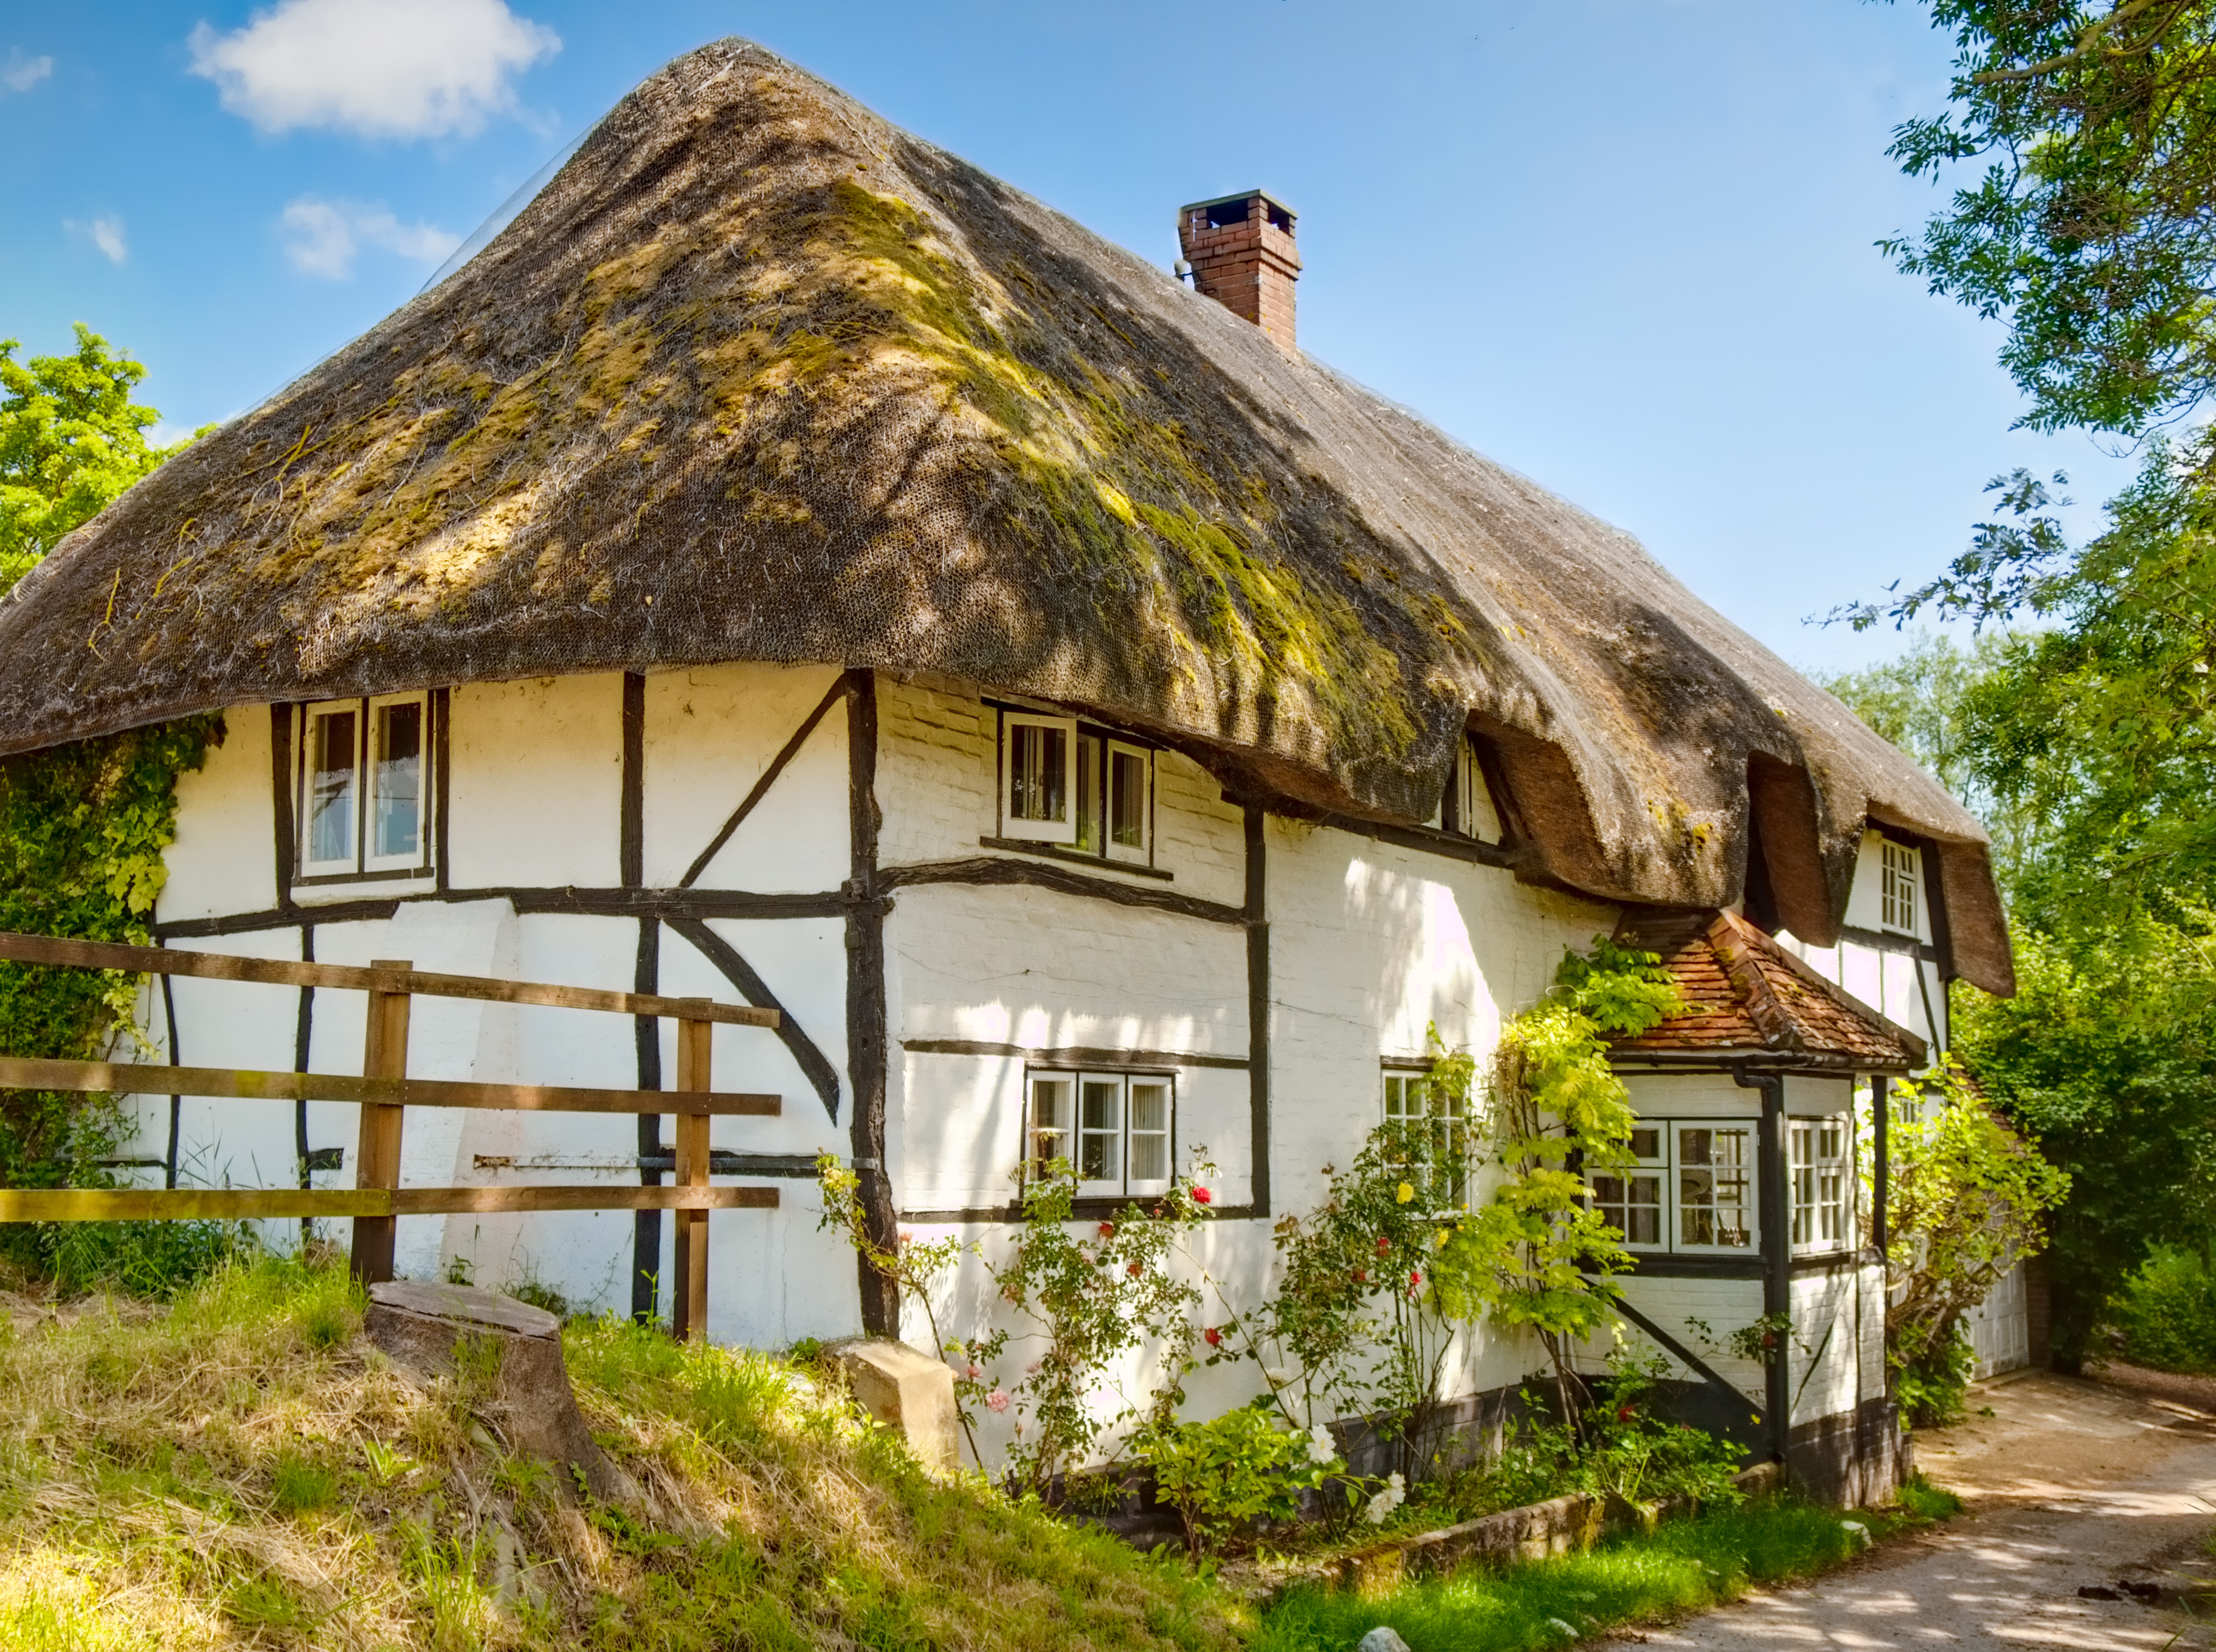 A thatched cottage in nether wallop hampshire flickr photo sharing - The thatched cottage ...